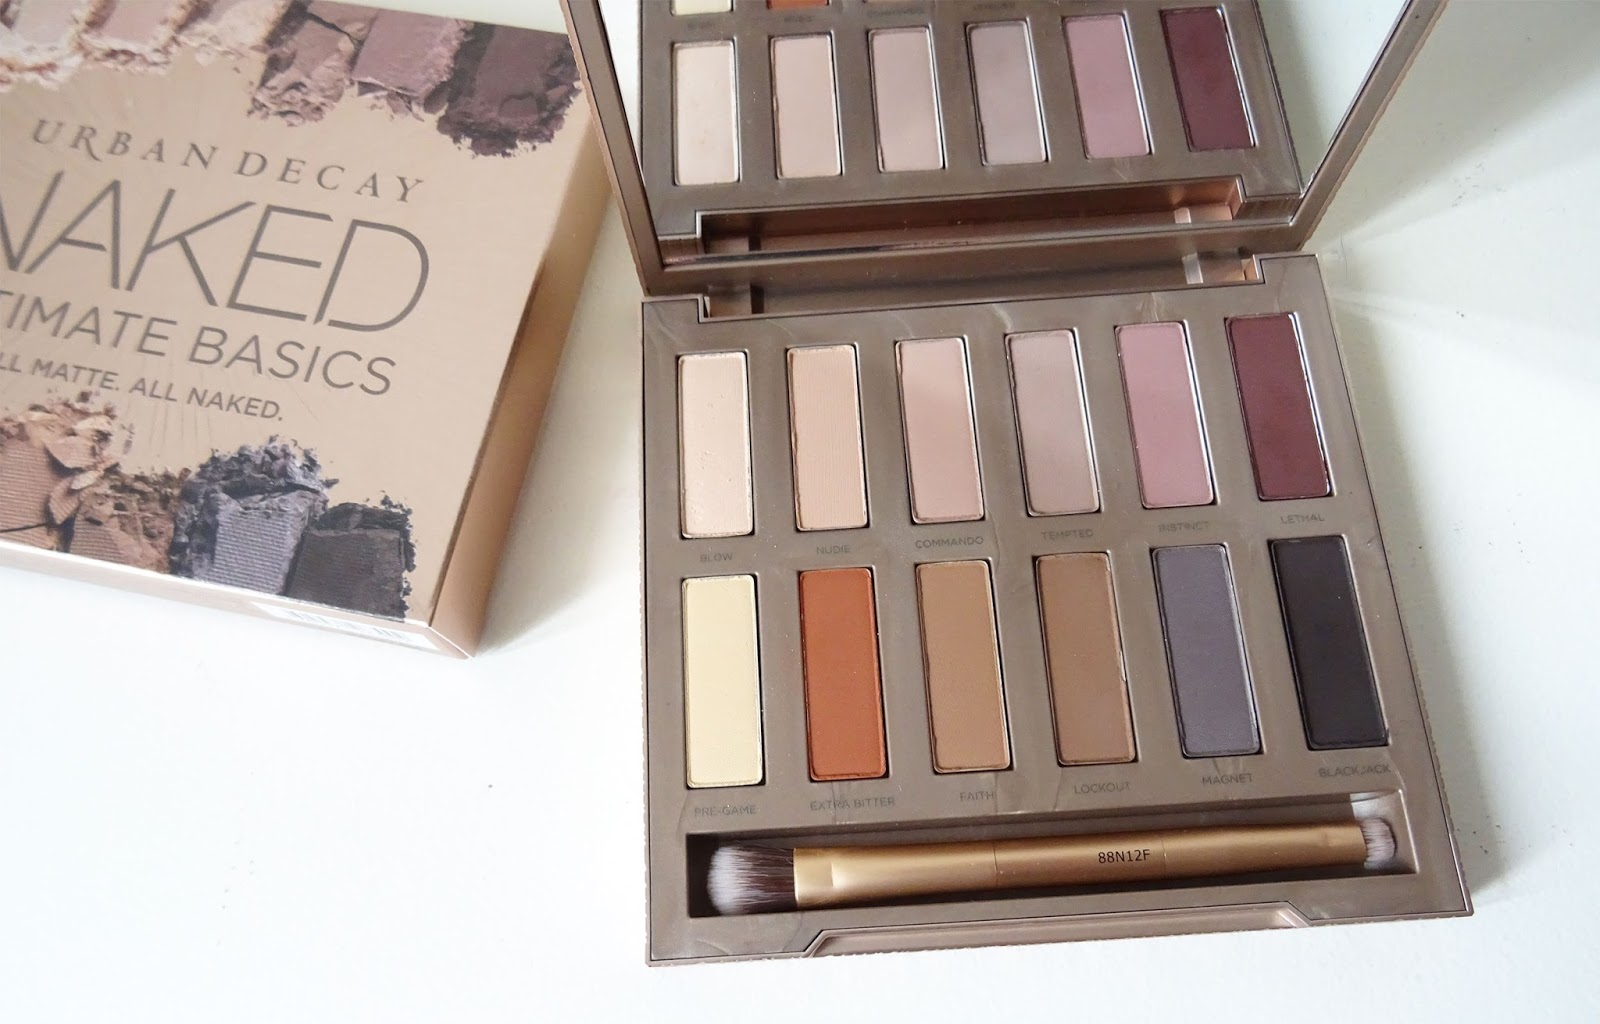 Naked Ultimate Basics Urban Decay